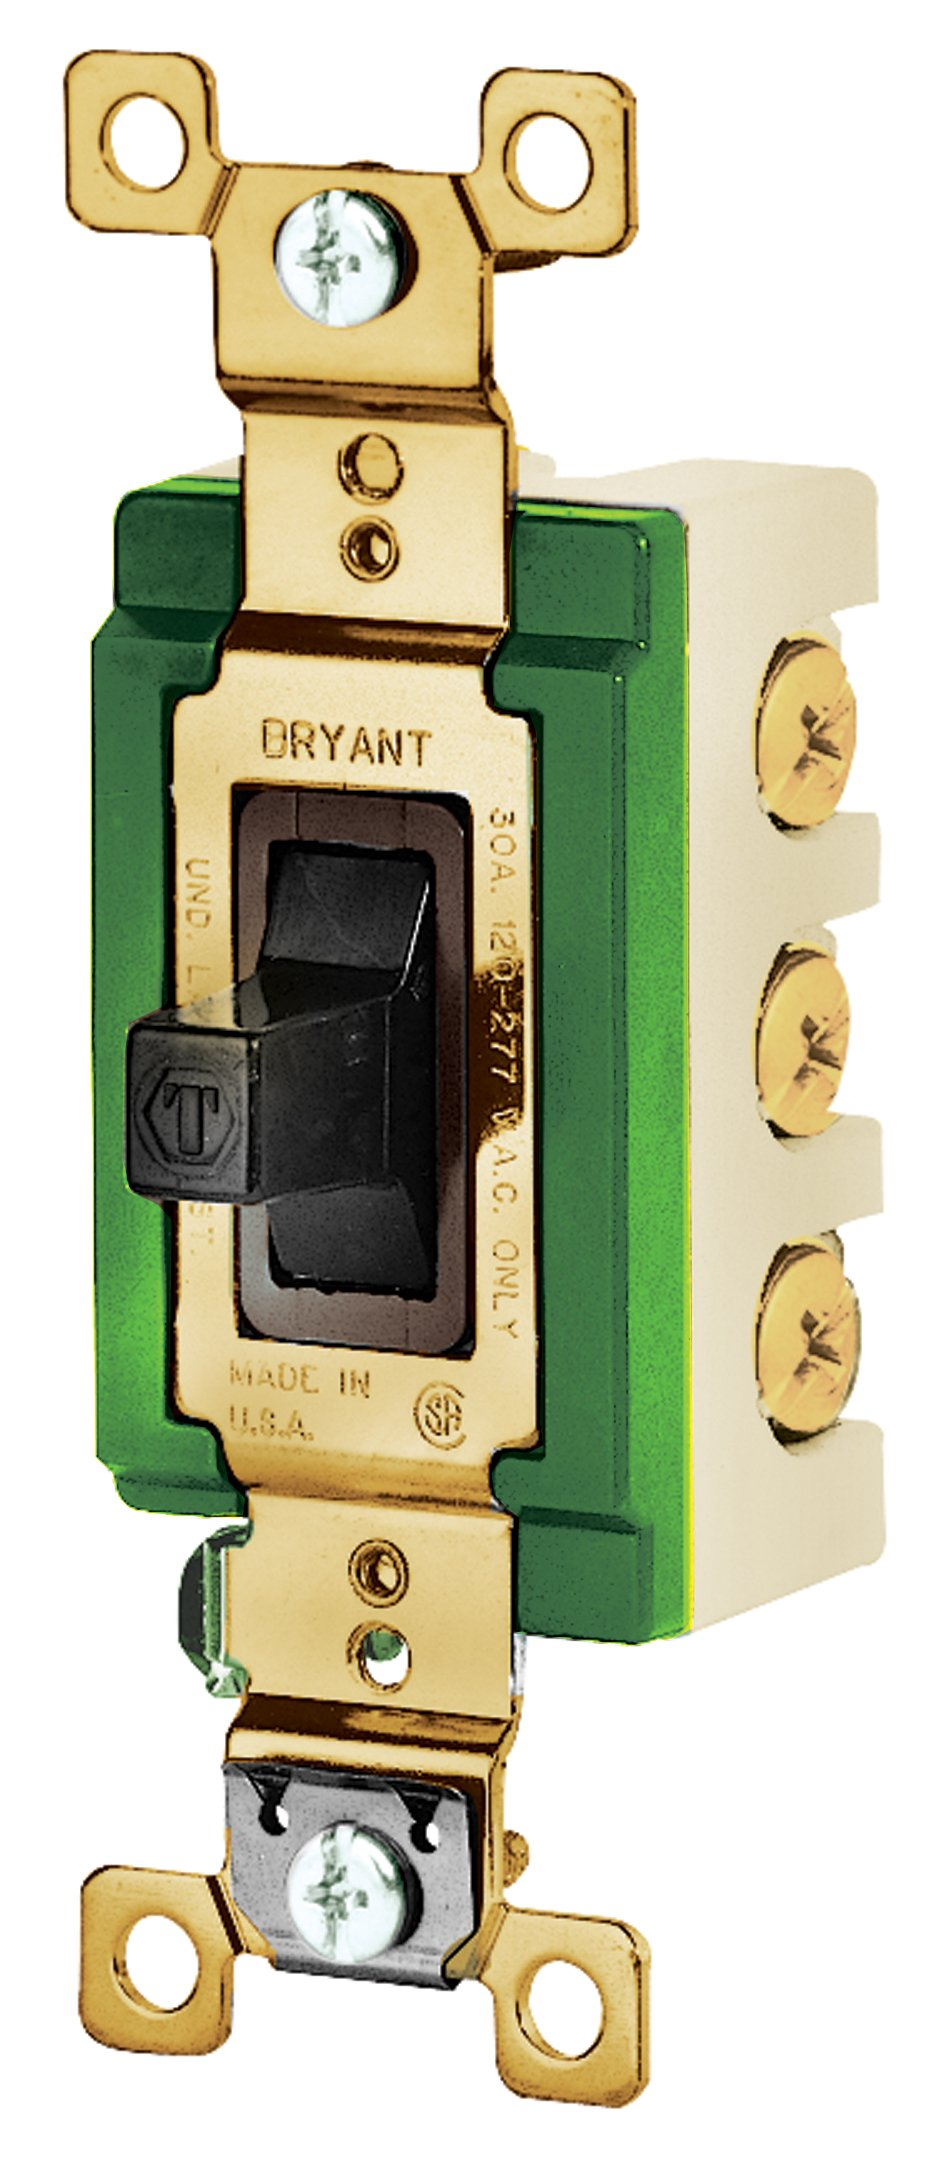 Bryant Electric 3025BRN Toggle Switch, Double-Pole, Double Throw, Industrial Grade, Back and Side Wired, 30 Amp, 120/277 VAC, Brown